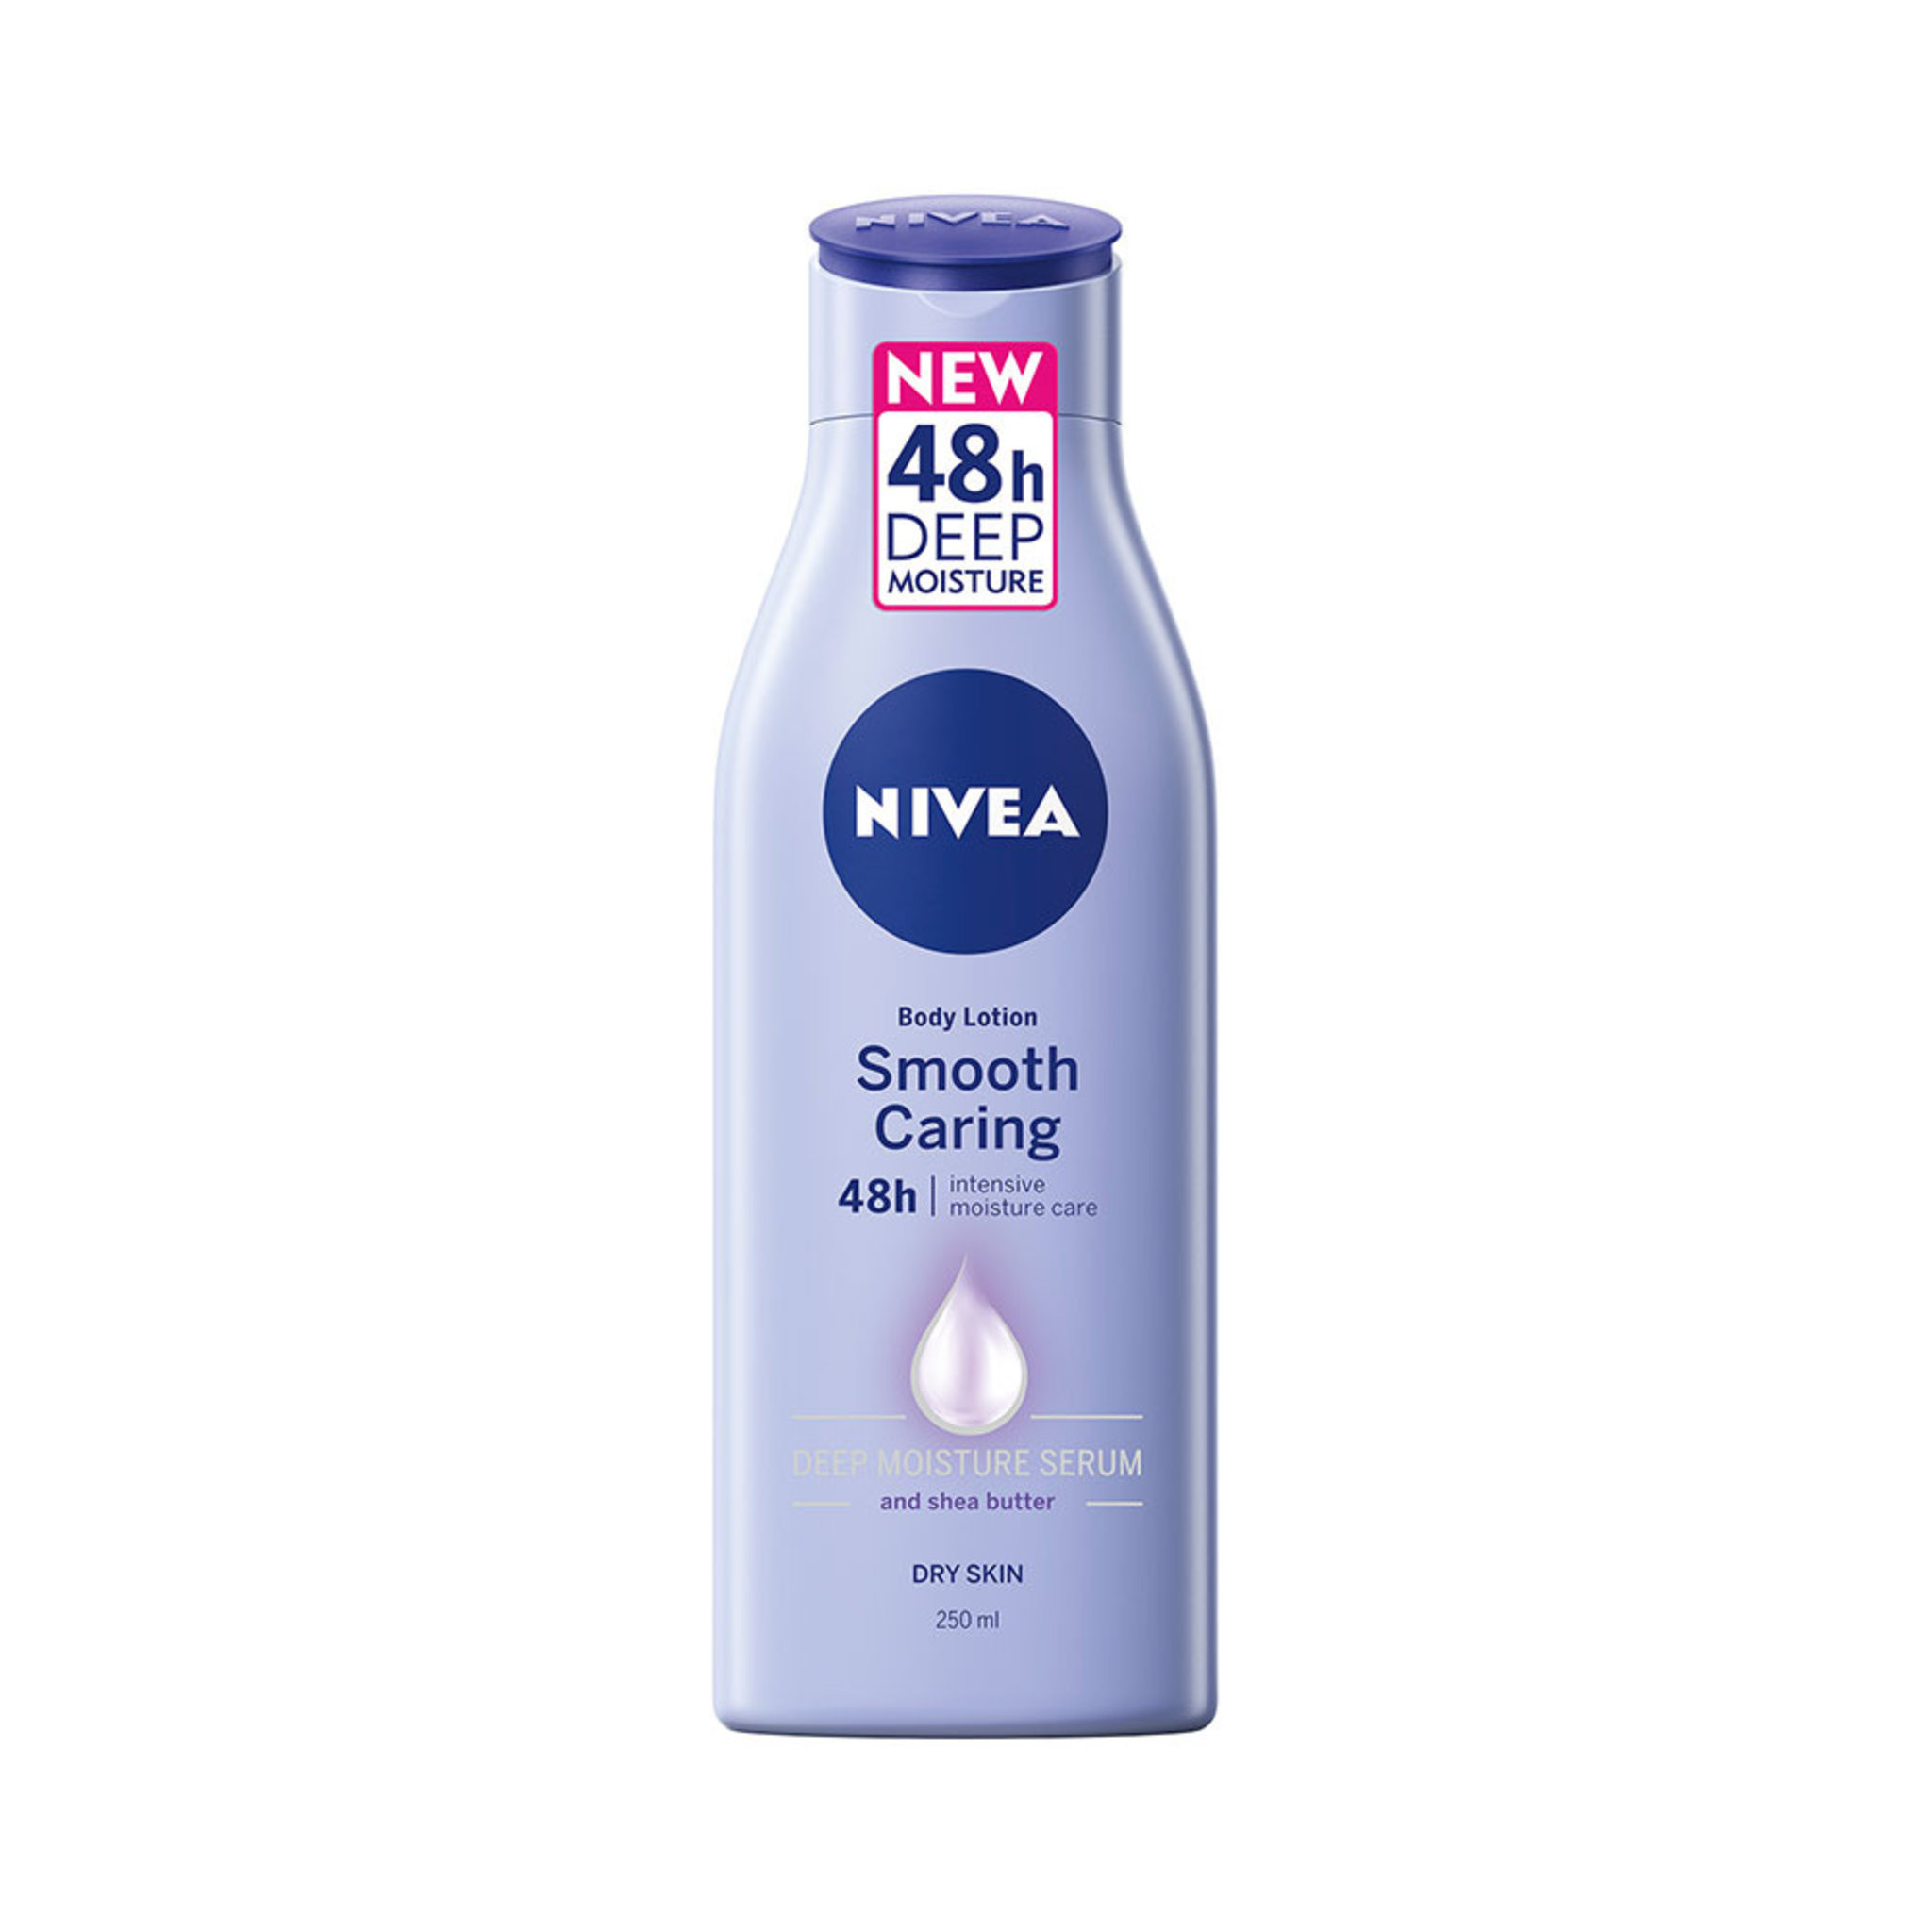 Nivea Body Lotion Smooth Caring 48h - Test